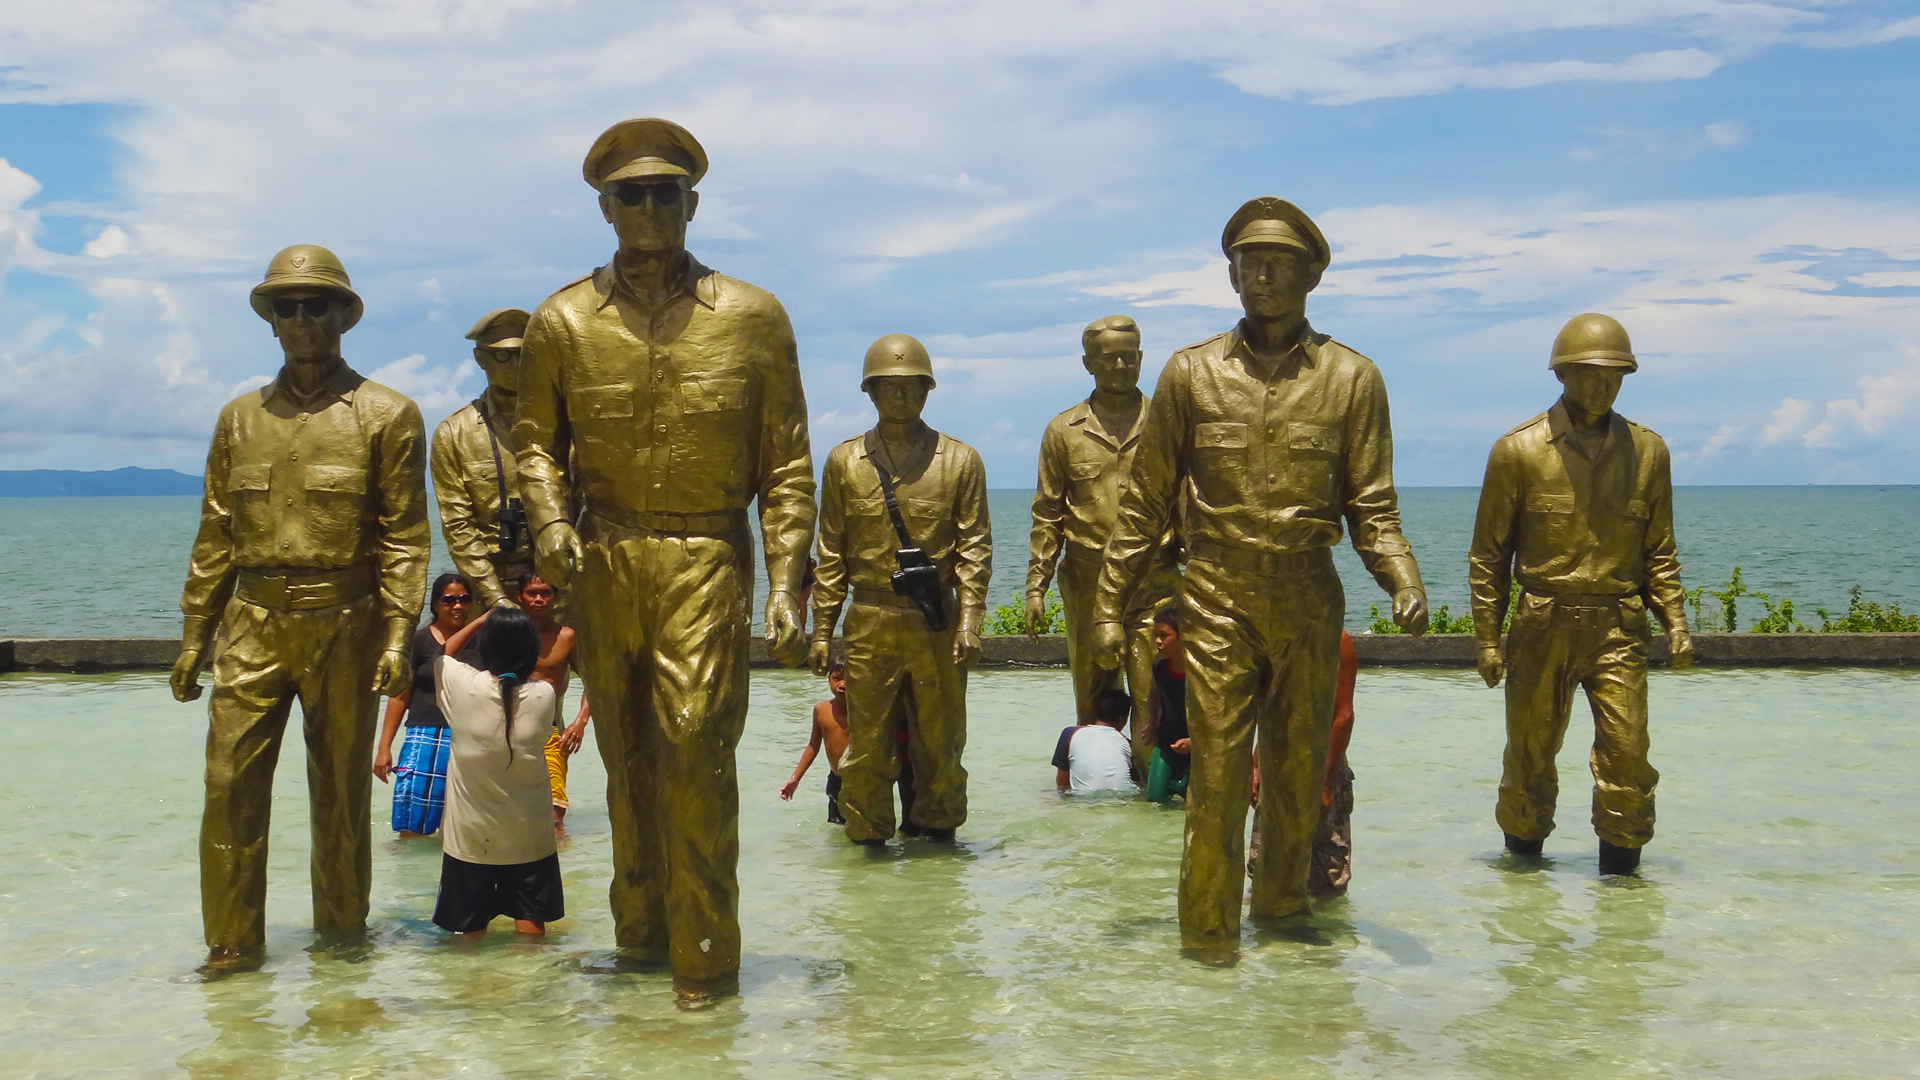 The MacArthur Leyte Landing Memorial National Park (also known as the Leyte Landing Memorial Park and MacArthur Park) is a protected area of the Philippines that commemorates the historic landing of General Douglas MacArthur in Leyte Gulf at the start of the campaign to recapture and liberate the Philippines from Japanese occupation on October 20, 1944. The war memorial is located in the municipality of Palo on Leyte island in Eastern Visayas and is one of the region's major tourist attractions. It was declared a national park on July 12, 1977. Photo taken on May 20, 2012.